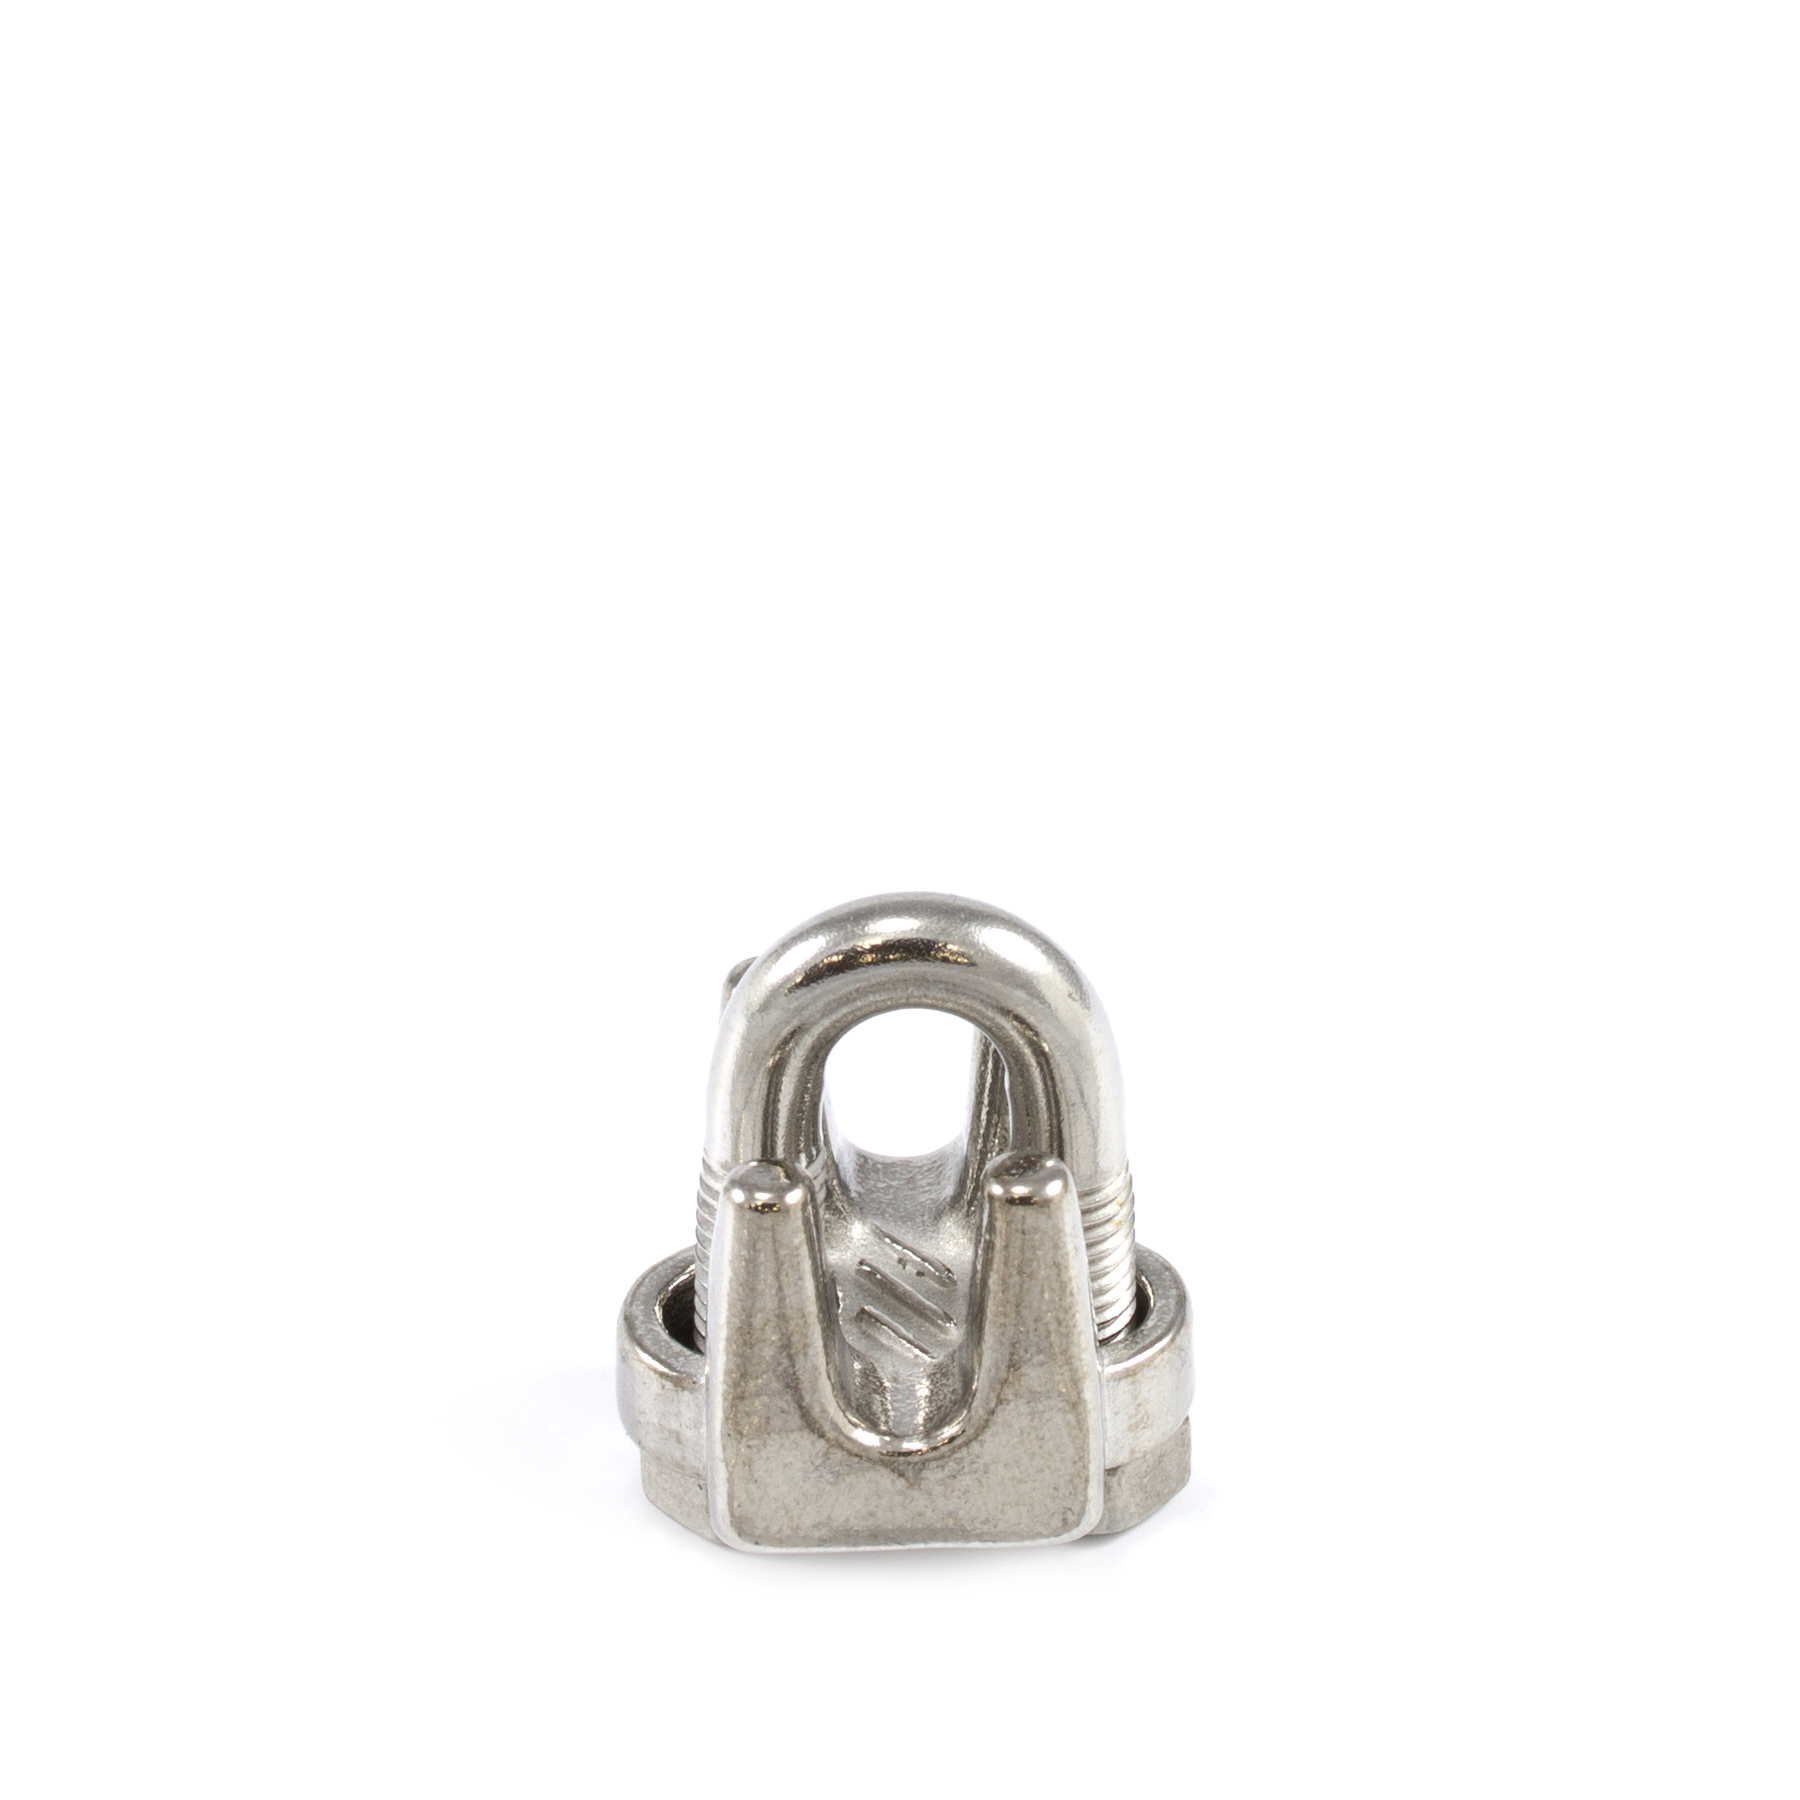 Thumbnail Polyfab Pro Rope Clamp #SS-WRC-05 5mm 2